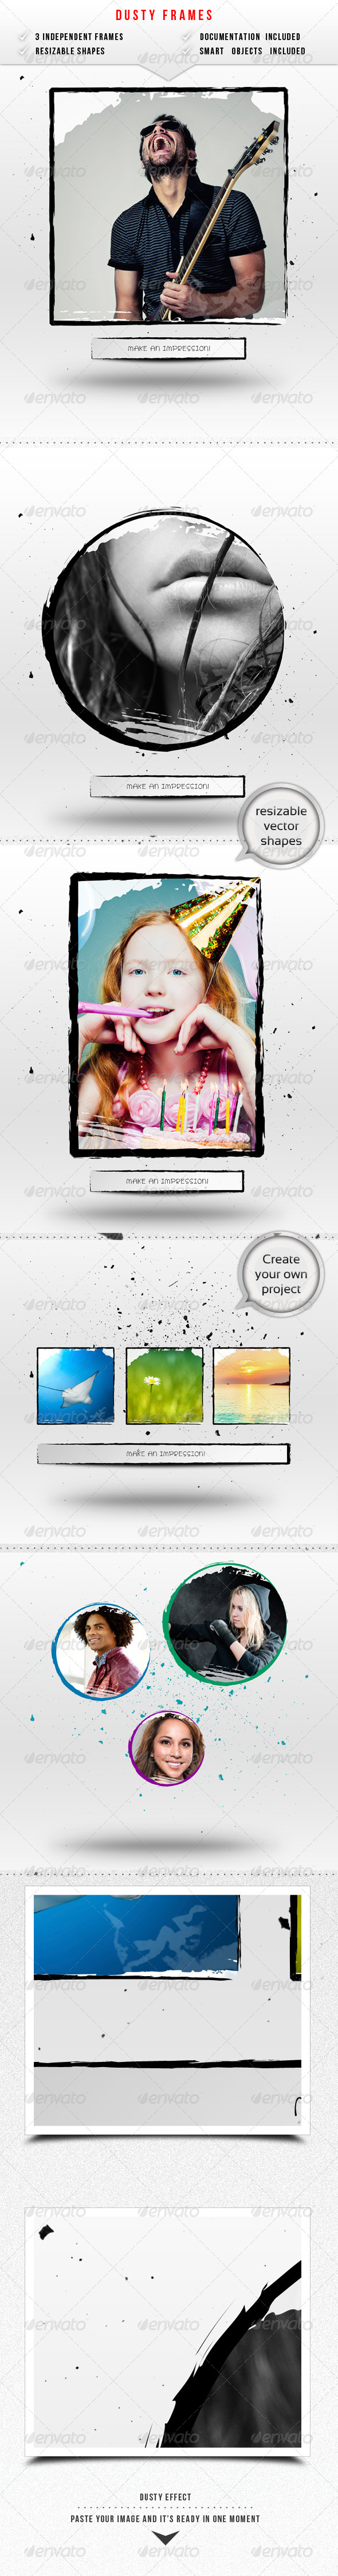 GraphicRiver Dusty Image Frames 6600090